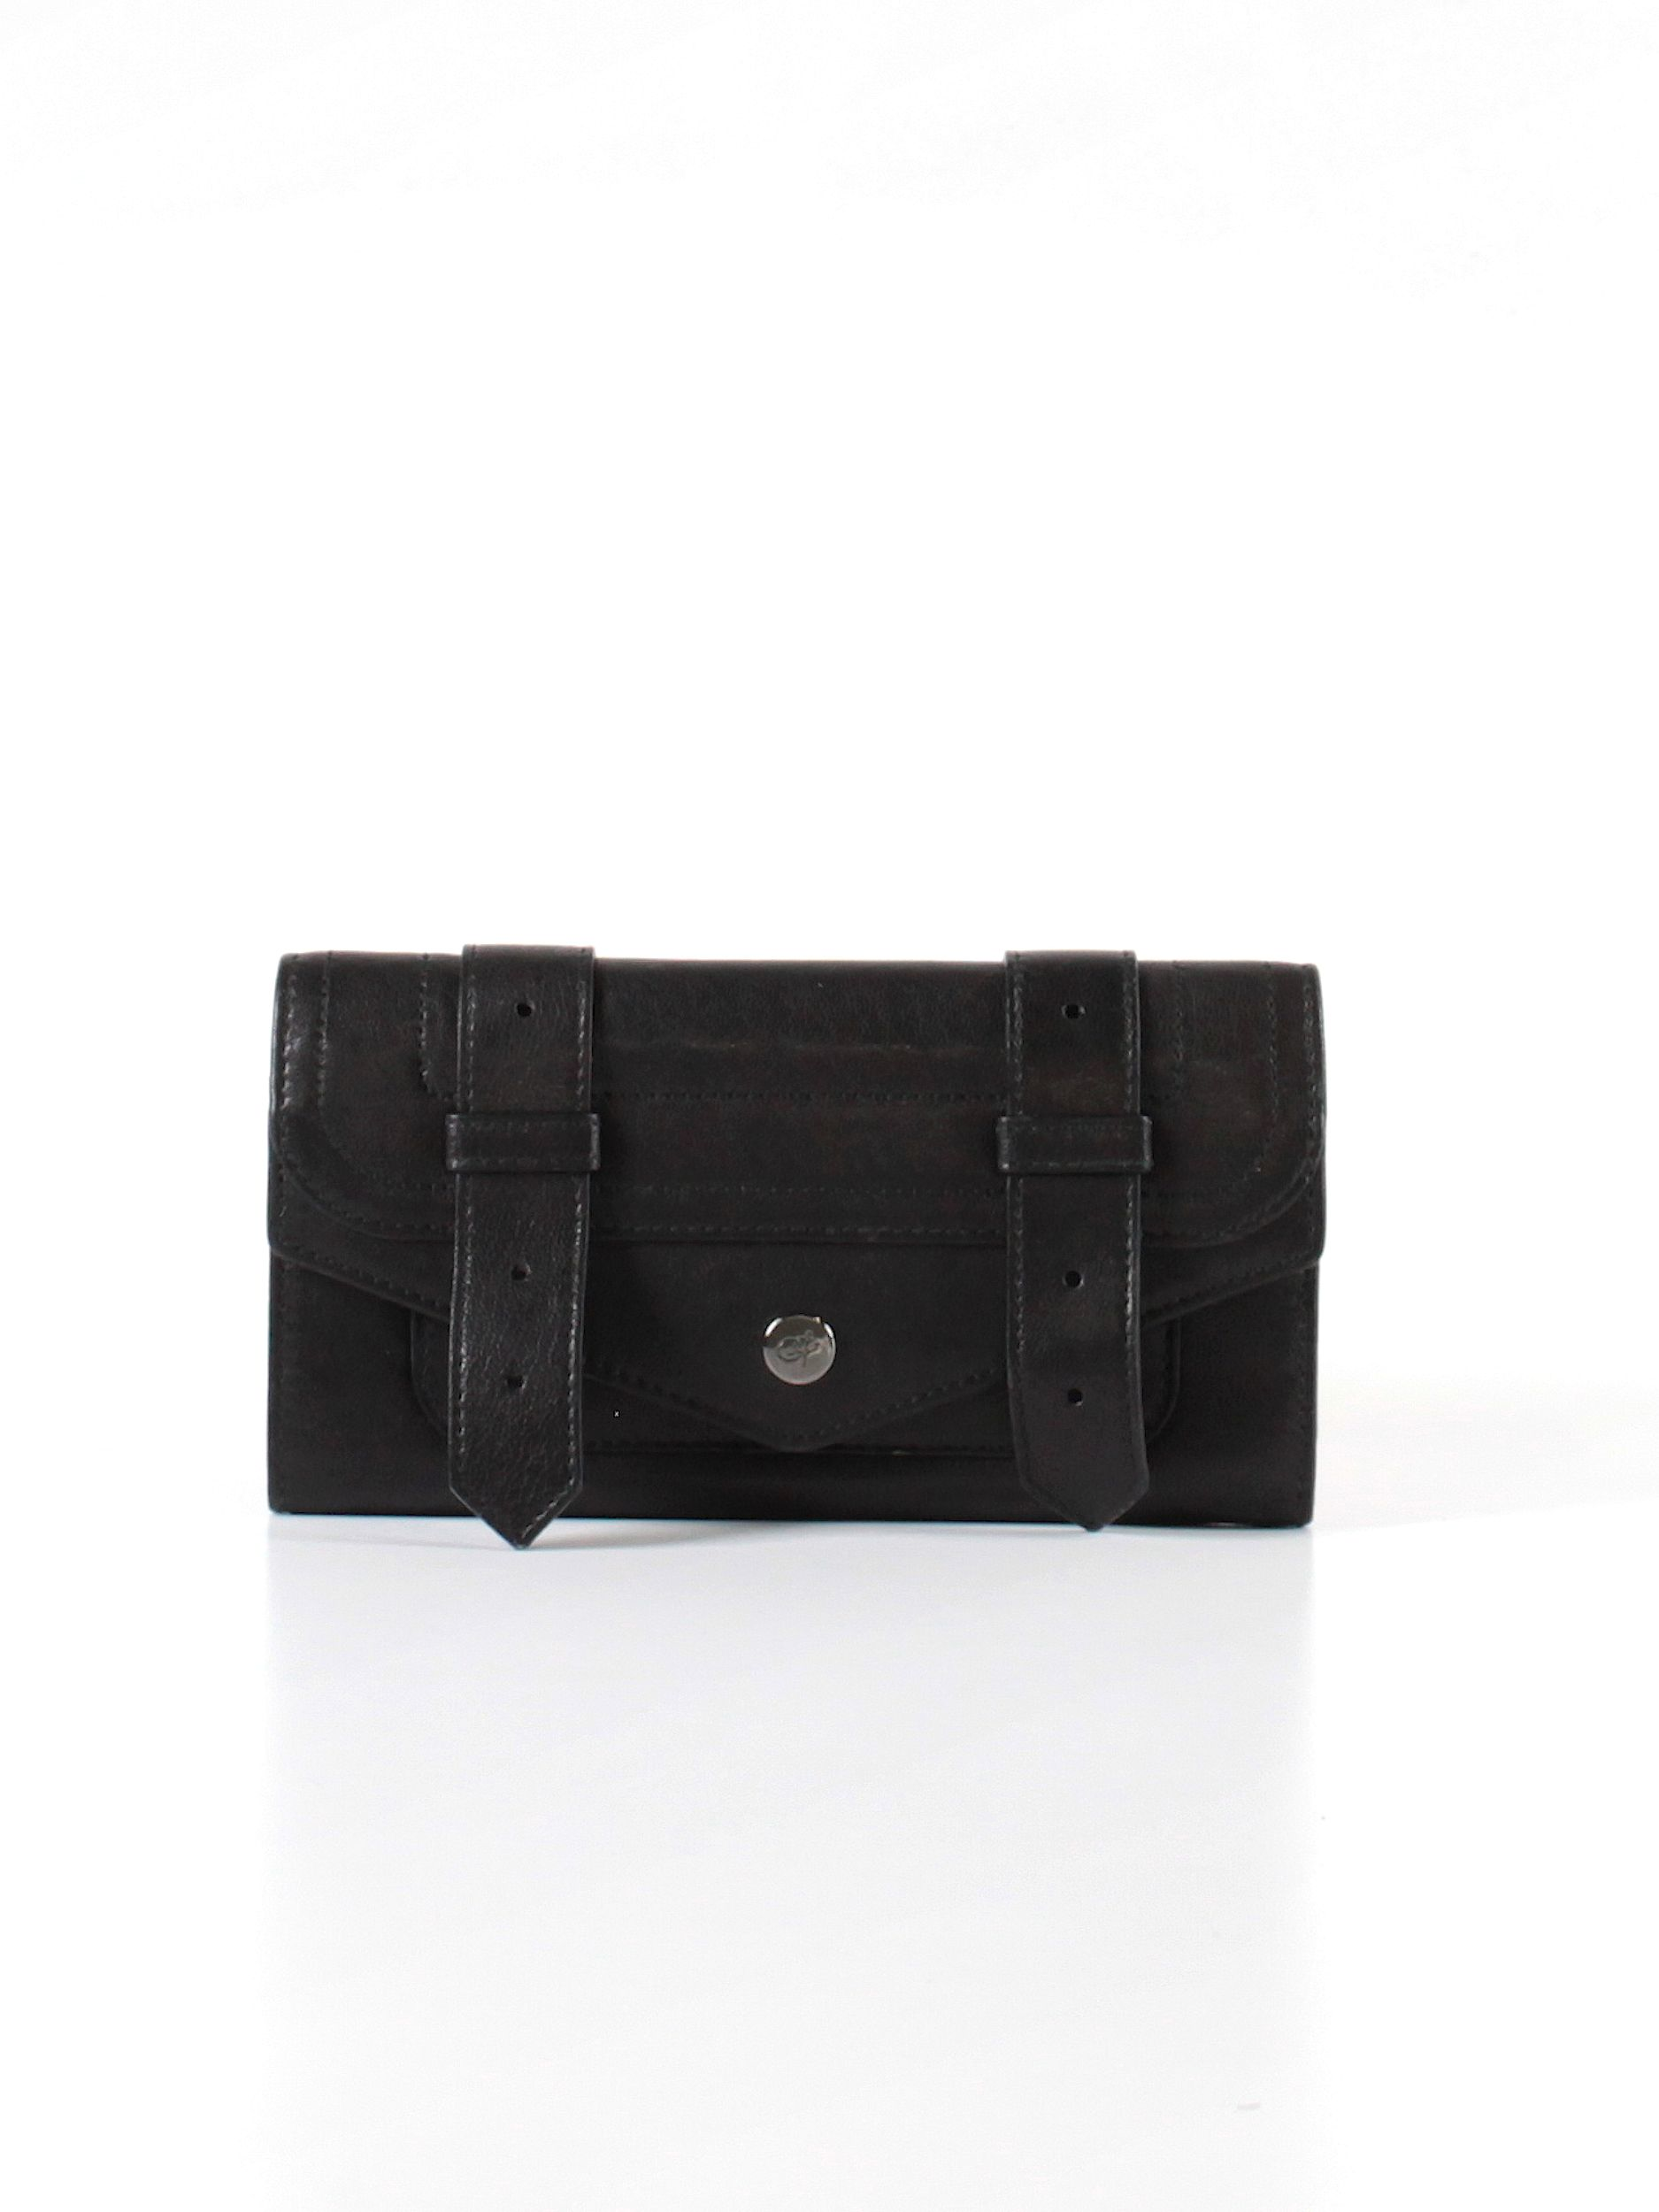 Proenza Schouler Wallet by thredUP Free Shipping Codes https://www.facebook.com/thredUPCoupon.PromoCode.DiscountOfferFreeShipping/photos/pb.877440532279545.-2207520000.1424100034./906748459348752